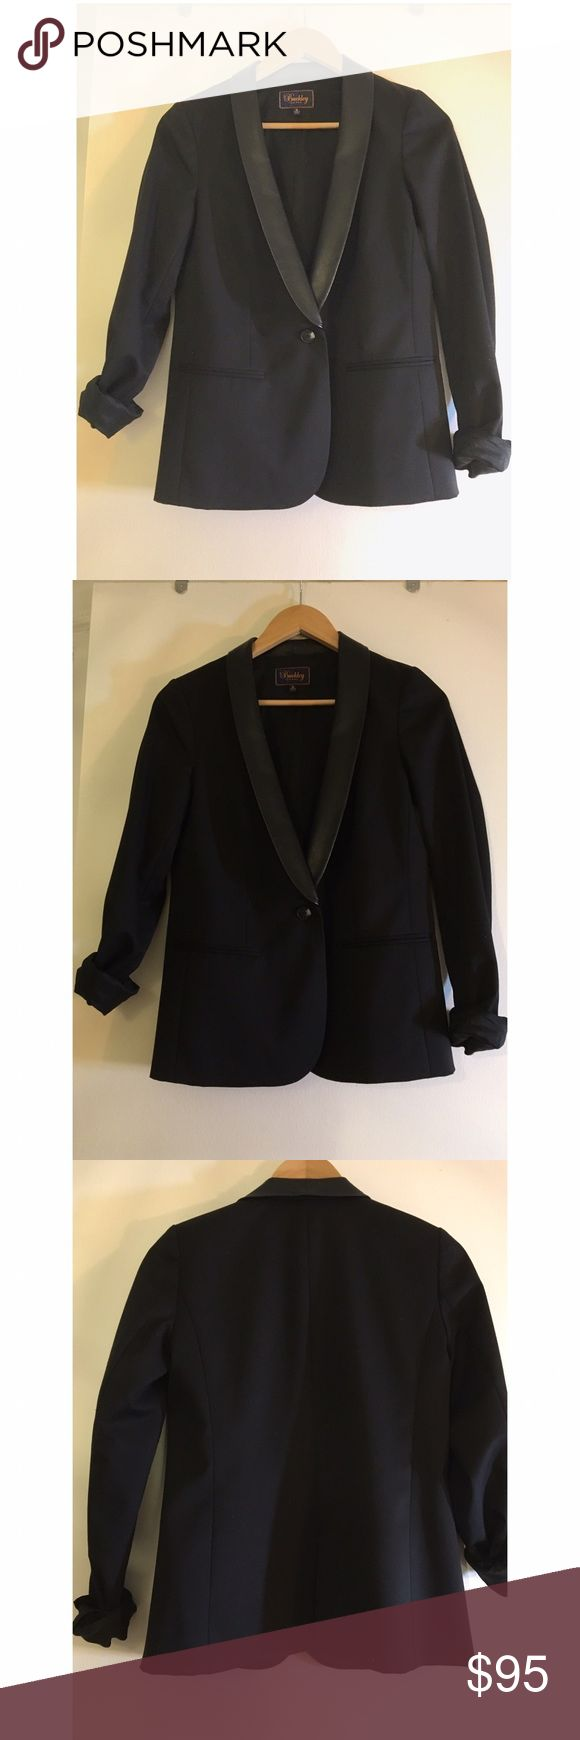 Madewell Buckley Tailors Blazer with Leather Trim Like New. Madewell blazer leather. Size 2. Sleek, flattering lines. Buttery soft leather collar accents a brilliant pairing with leather leggings / Jeans / slacks for an edgy look. True to size. Viscose/nylon with a hint of stretch, leather. Dry Clean. Import. Madewell Jackets & Coats